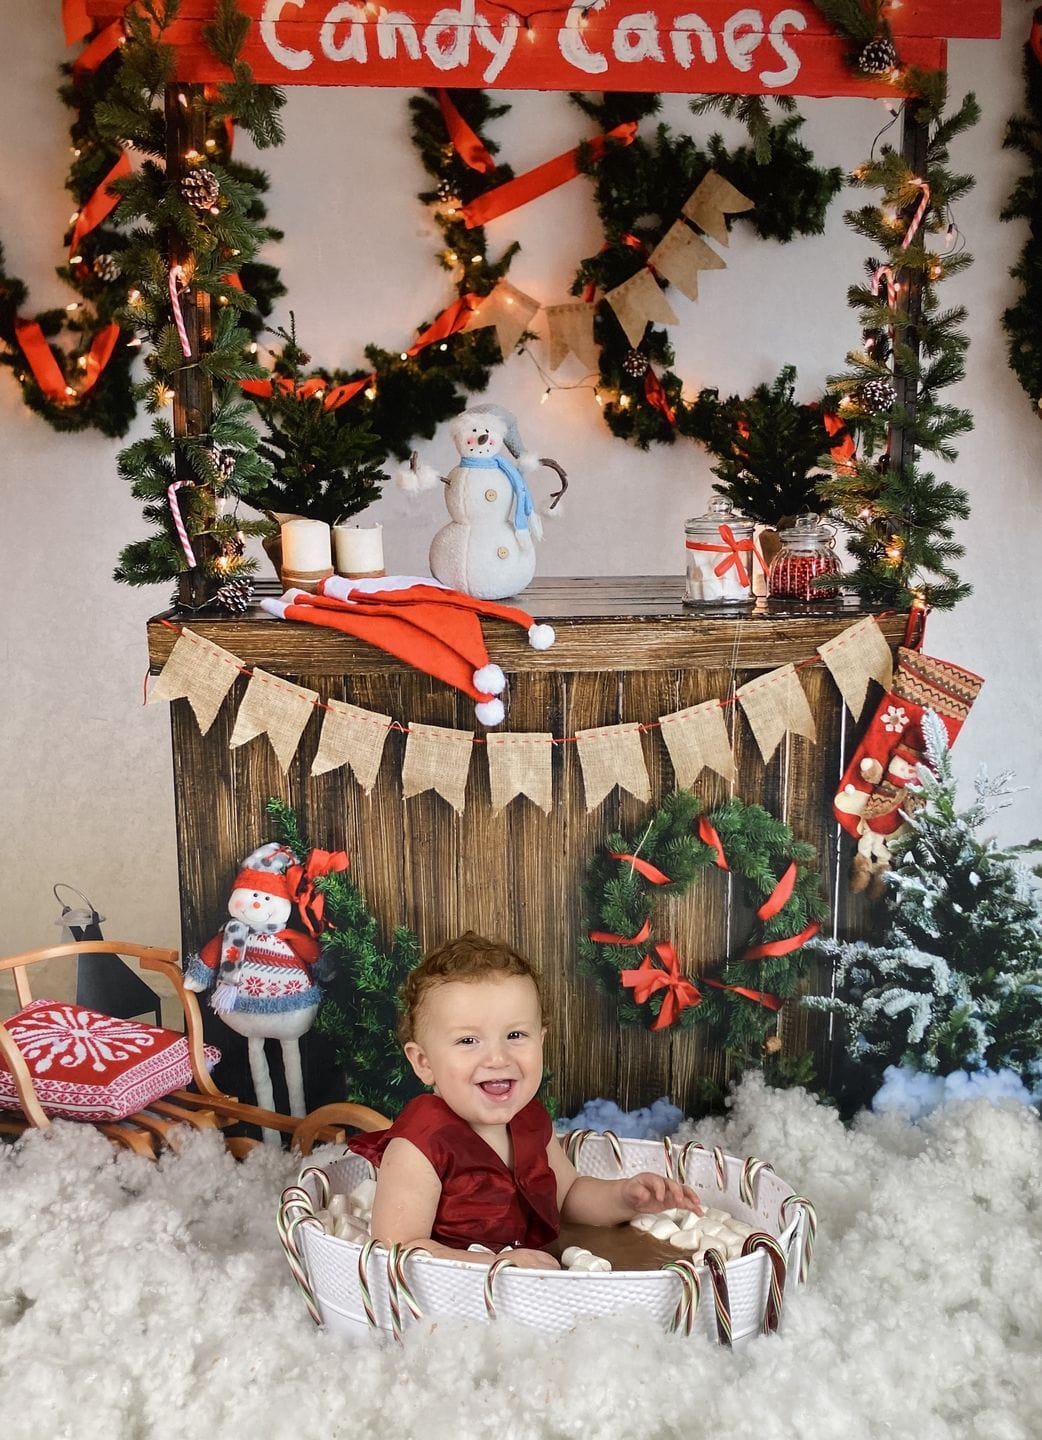 Load image into Gallery viewer, Kate Christmas Candy Canes Children Backdrop hot cocoa for Photography